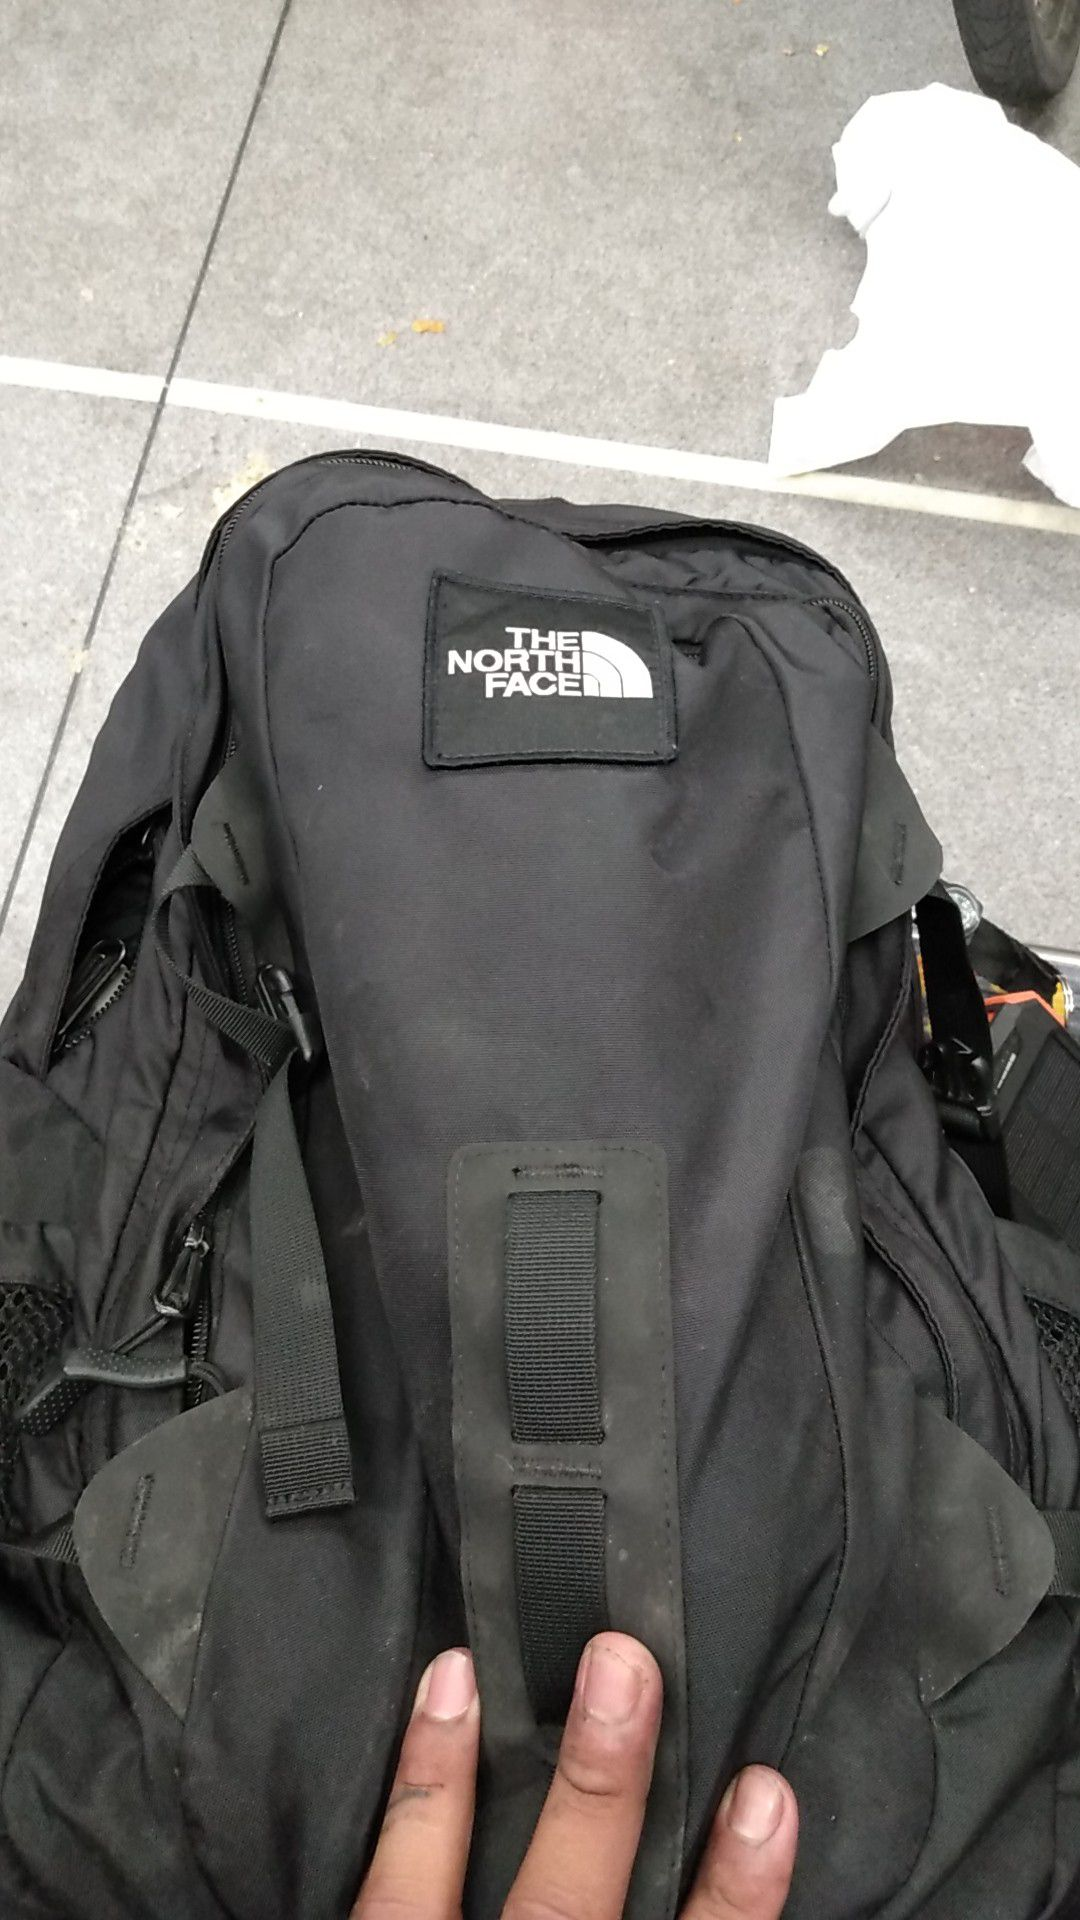 North face back pack not to big or to small perfect for bike riding hikeing